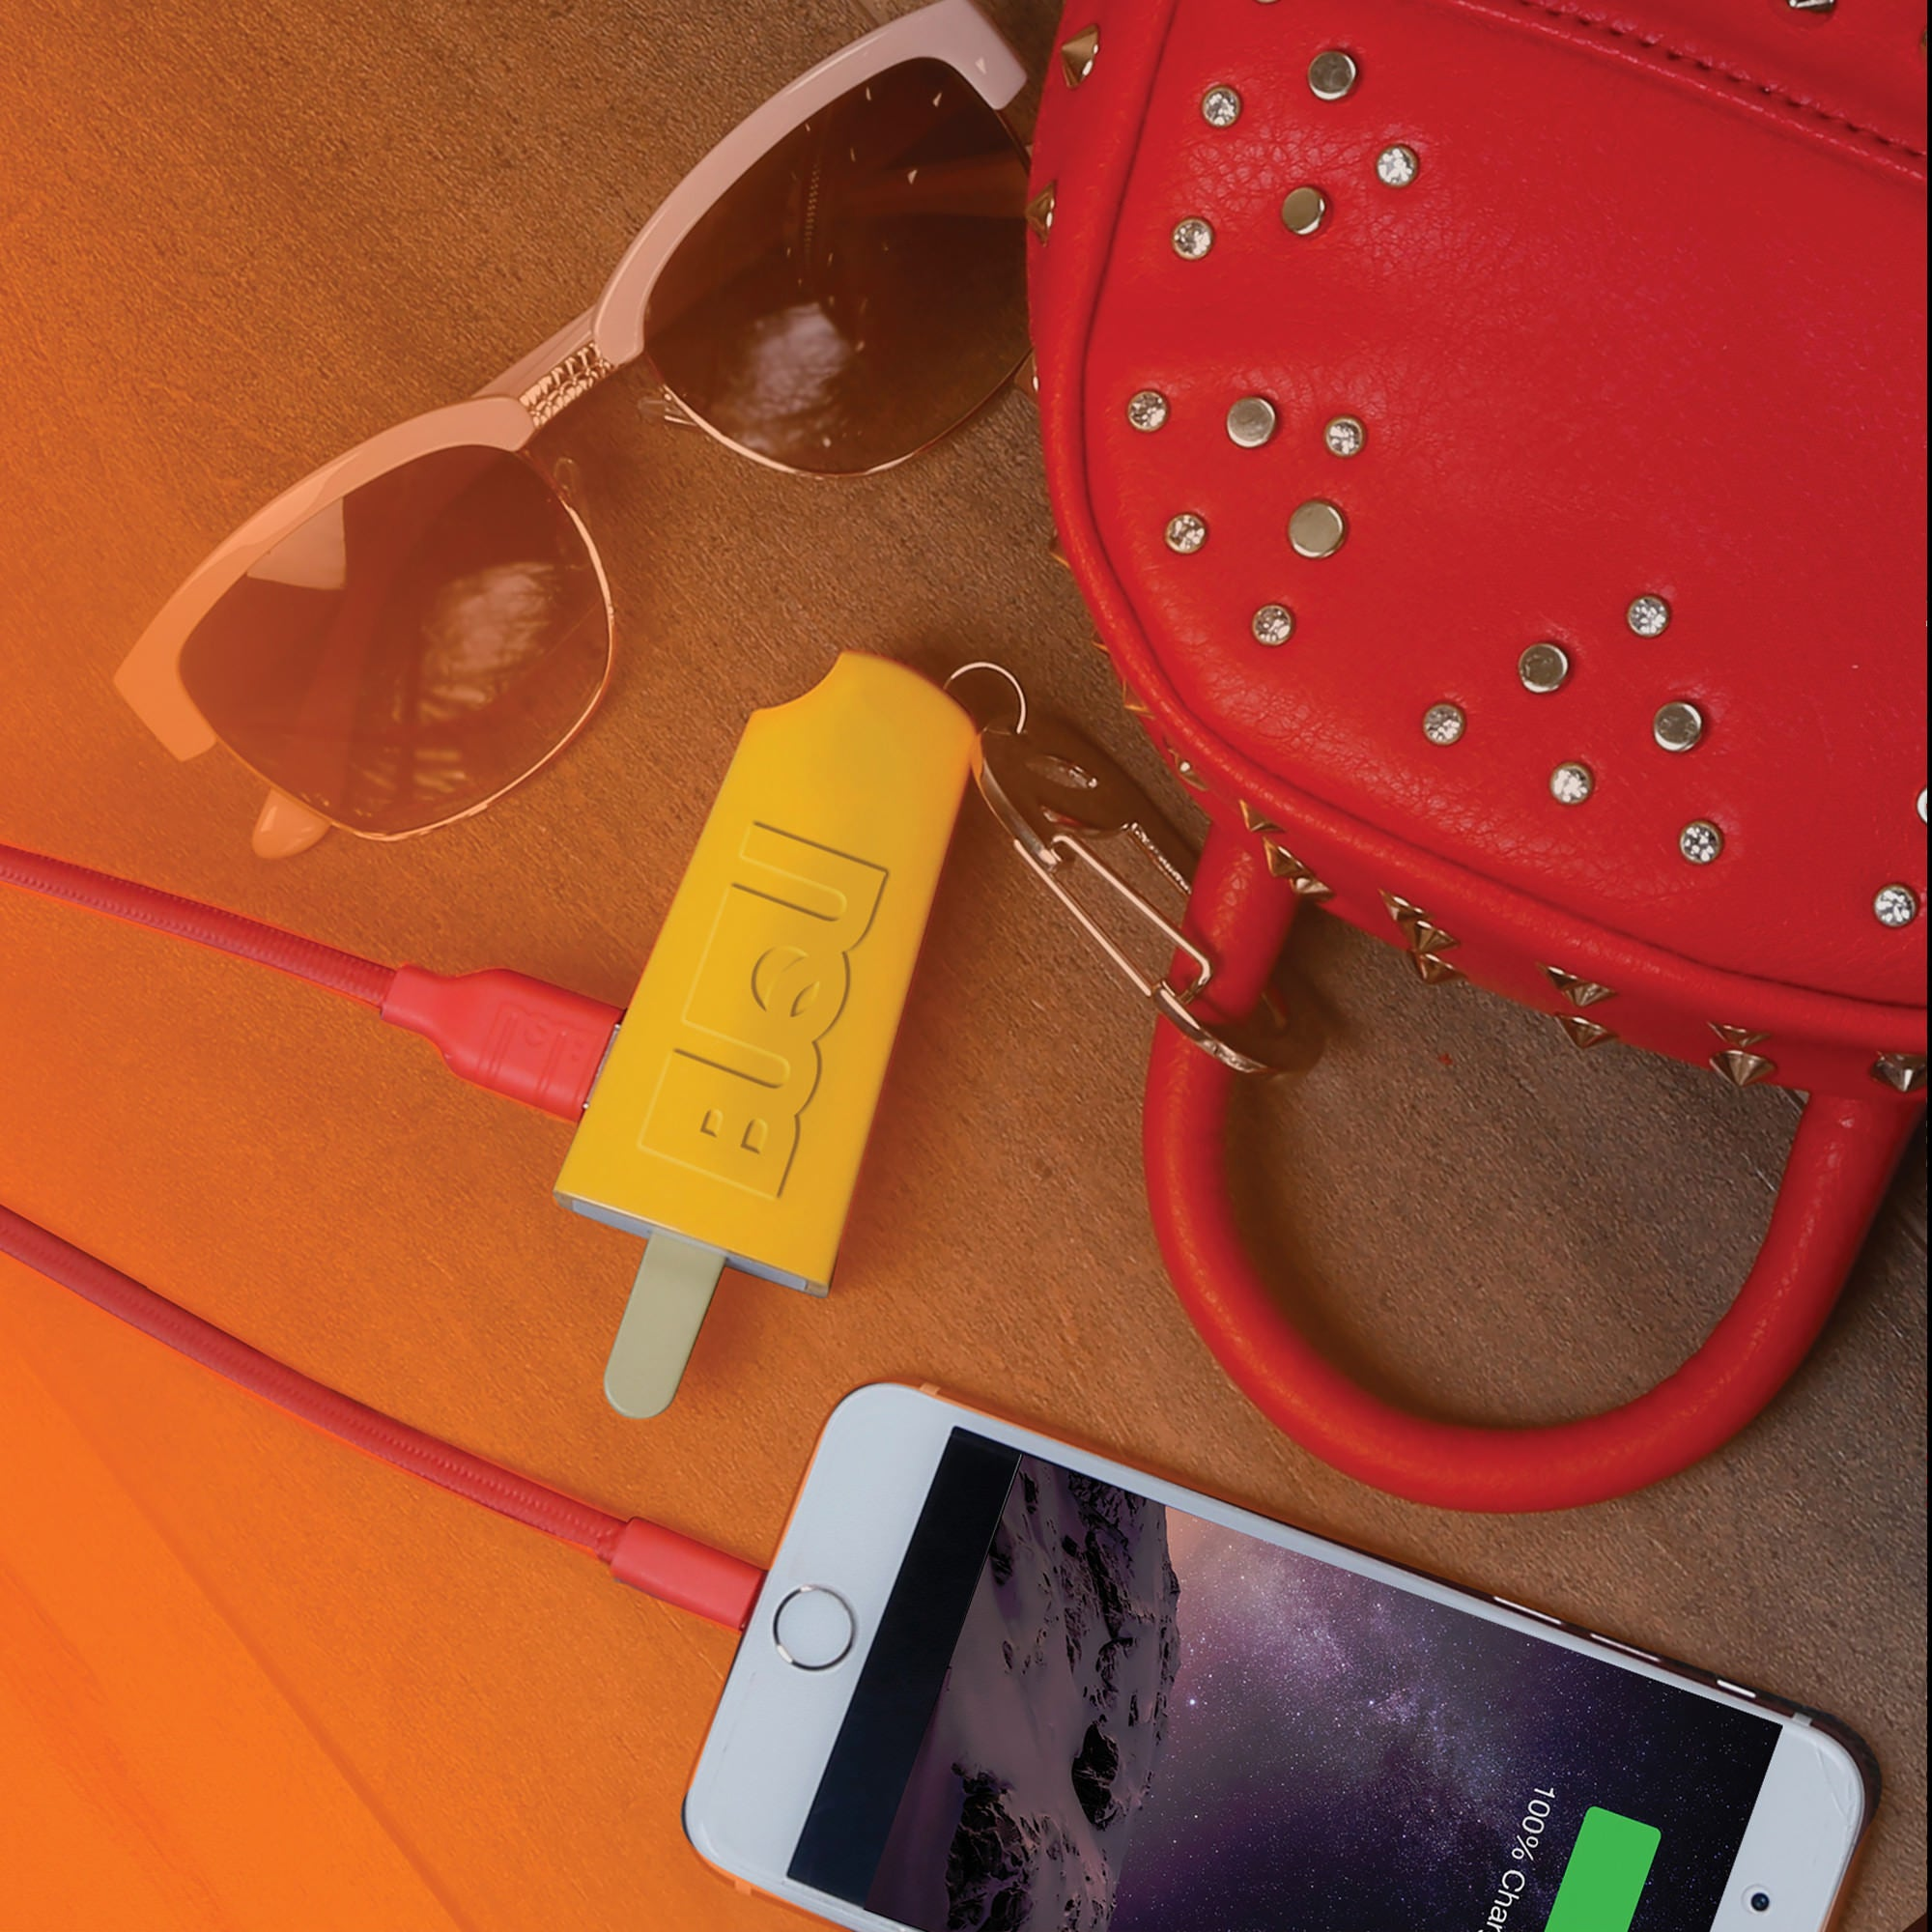 popsicle orange power bank phone charger buqu